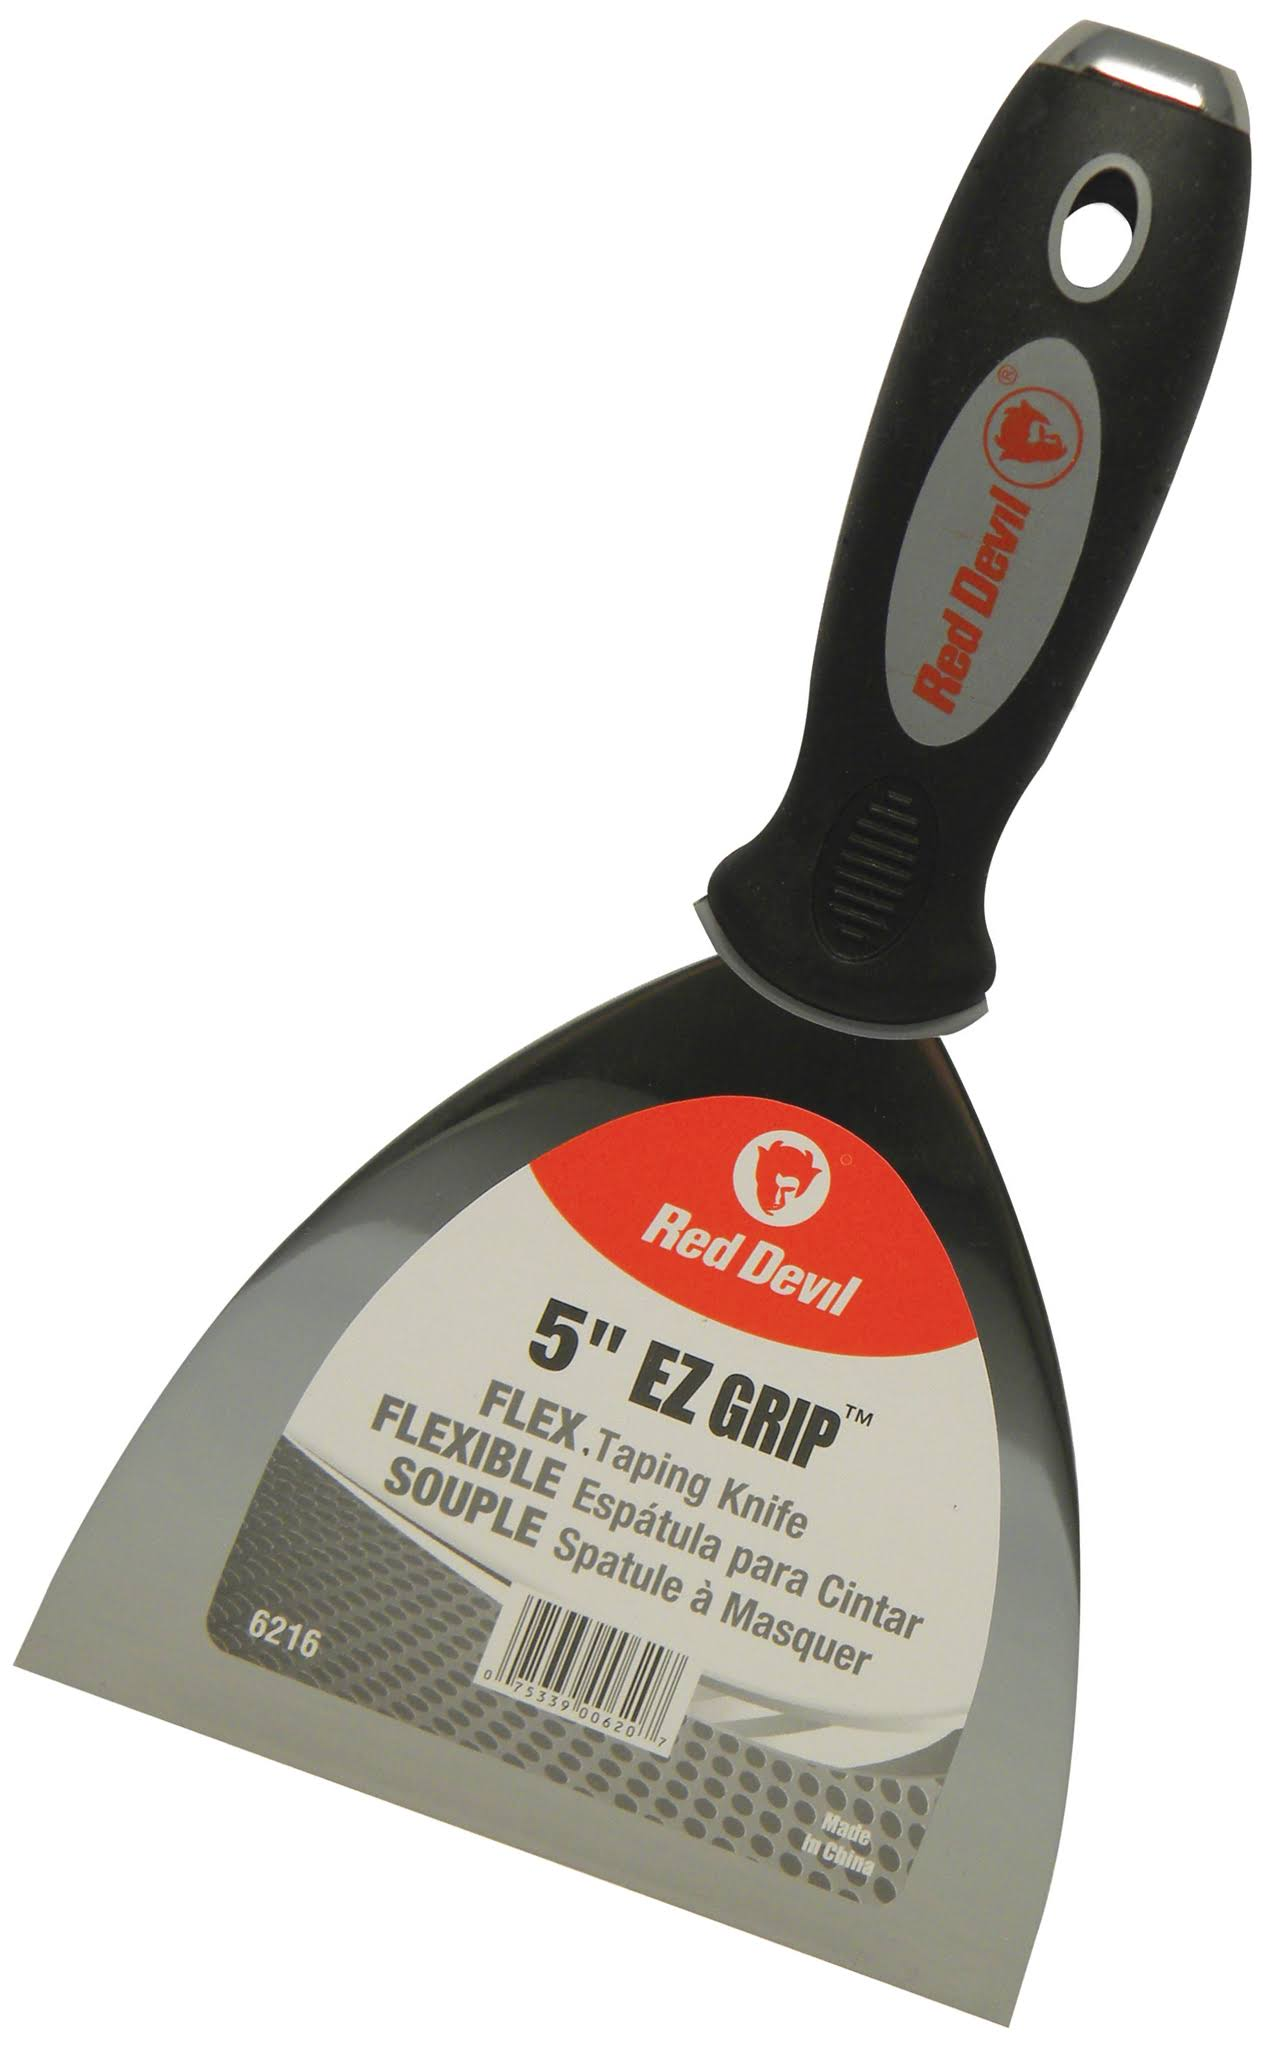 Red Devil Ez Grip Flexible Taping Knife